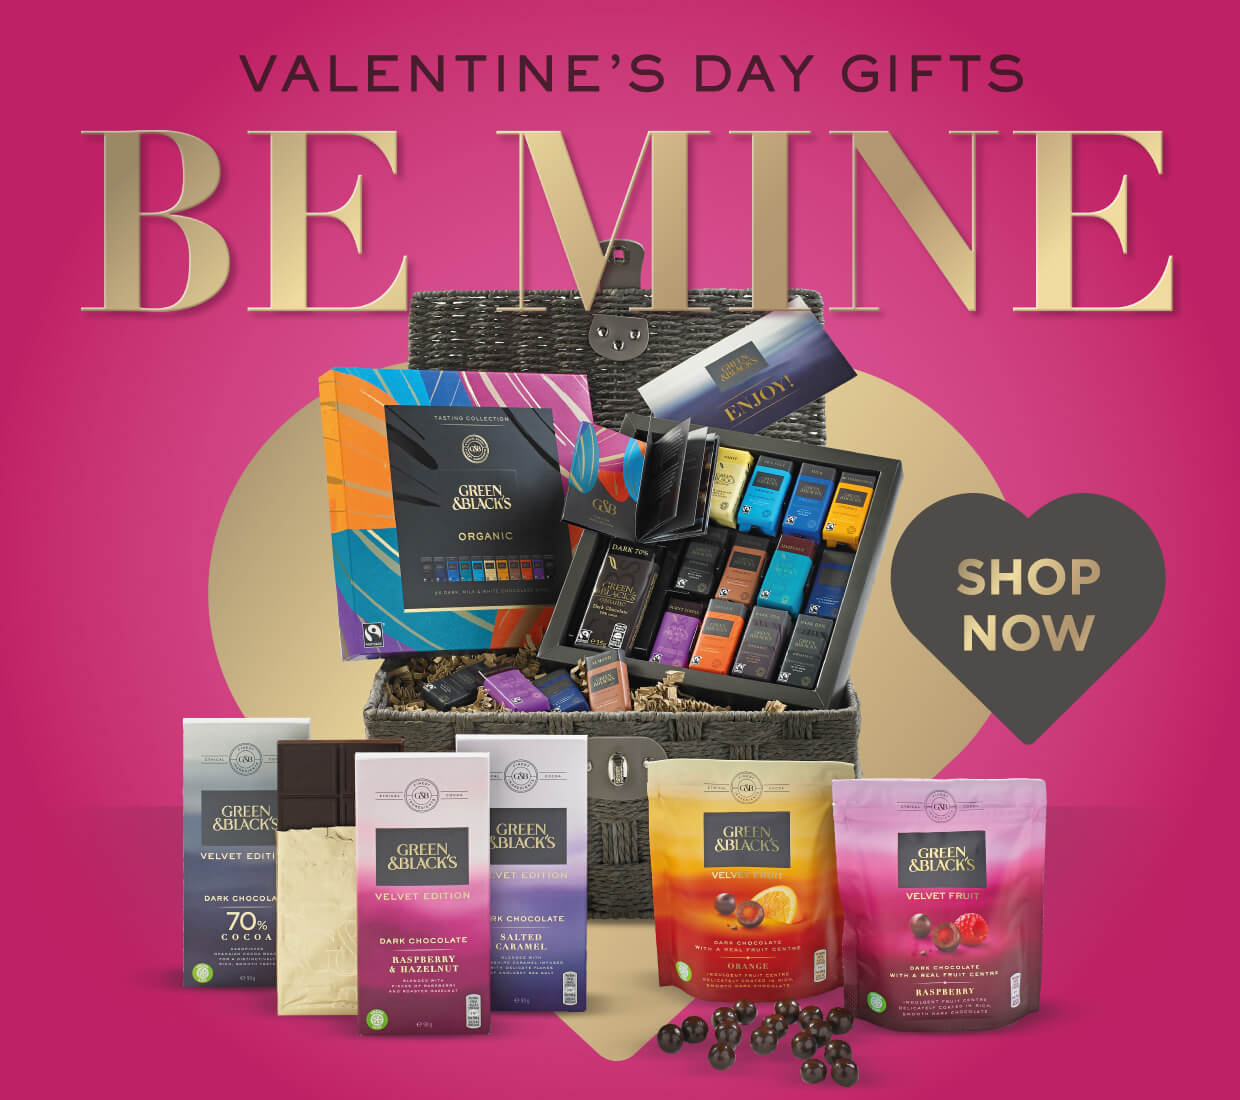 Green & Black's Valentine Gifts